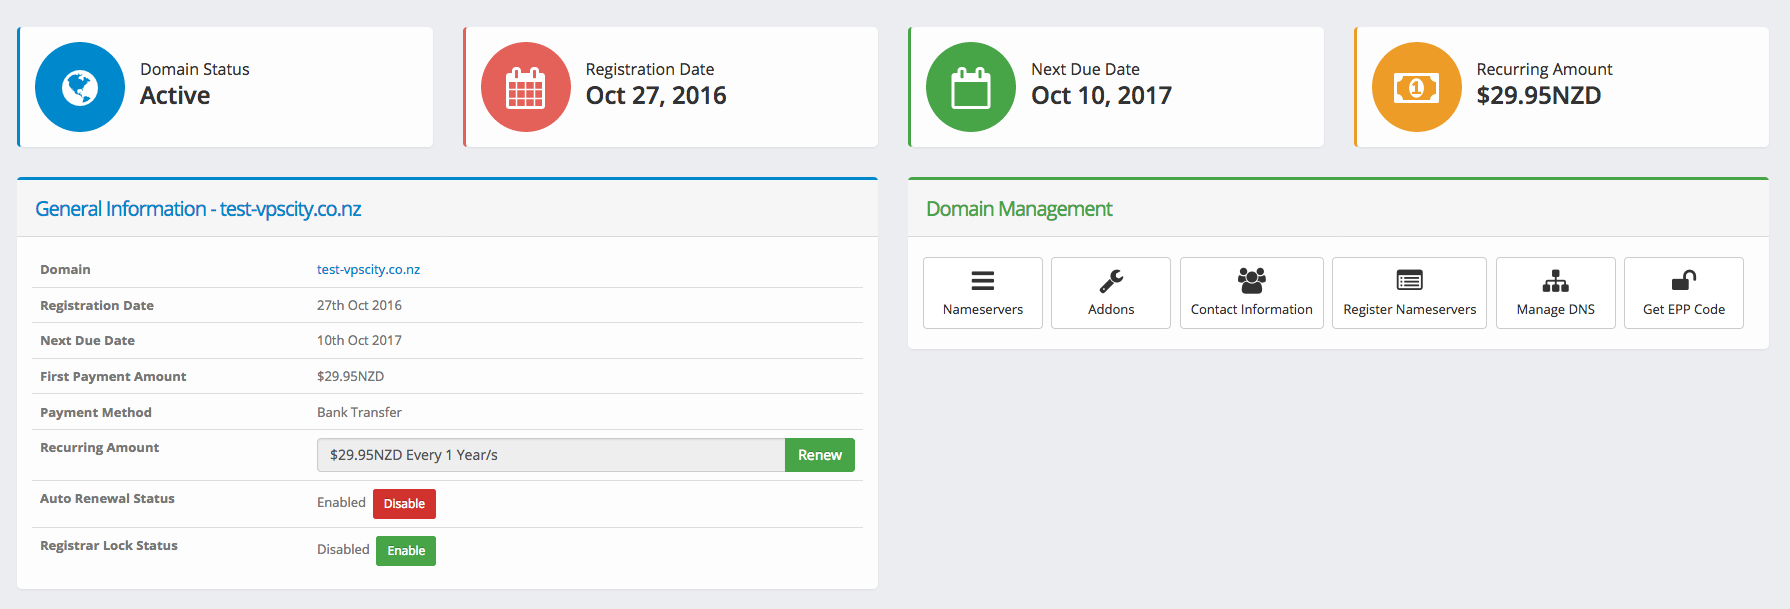 Domain Management Features